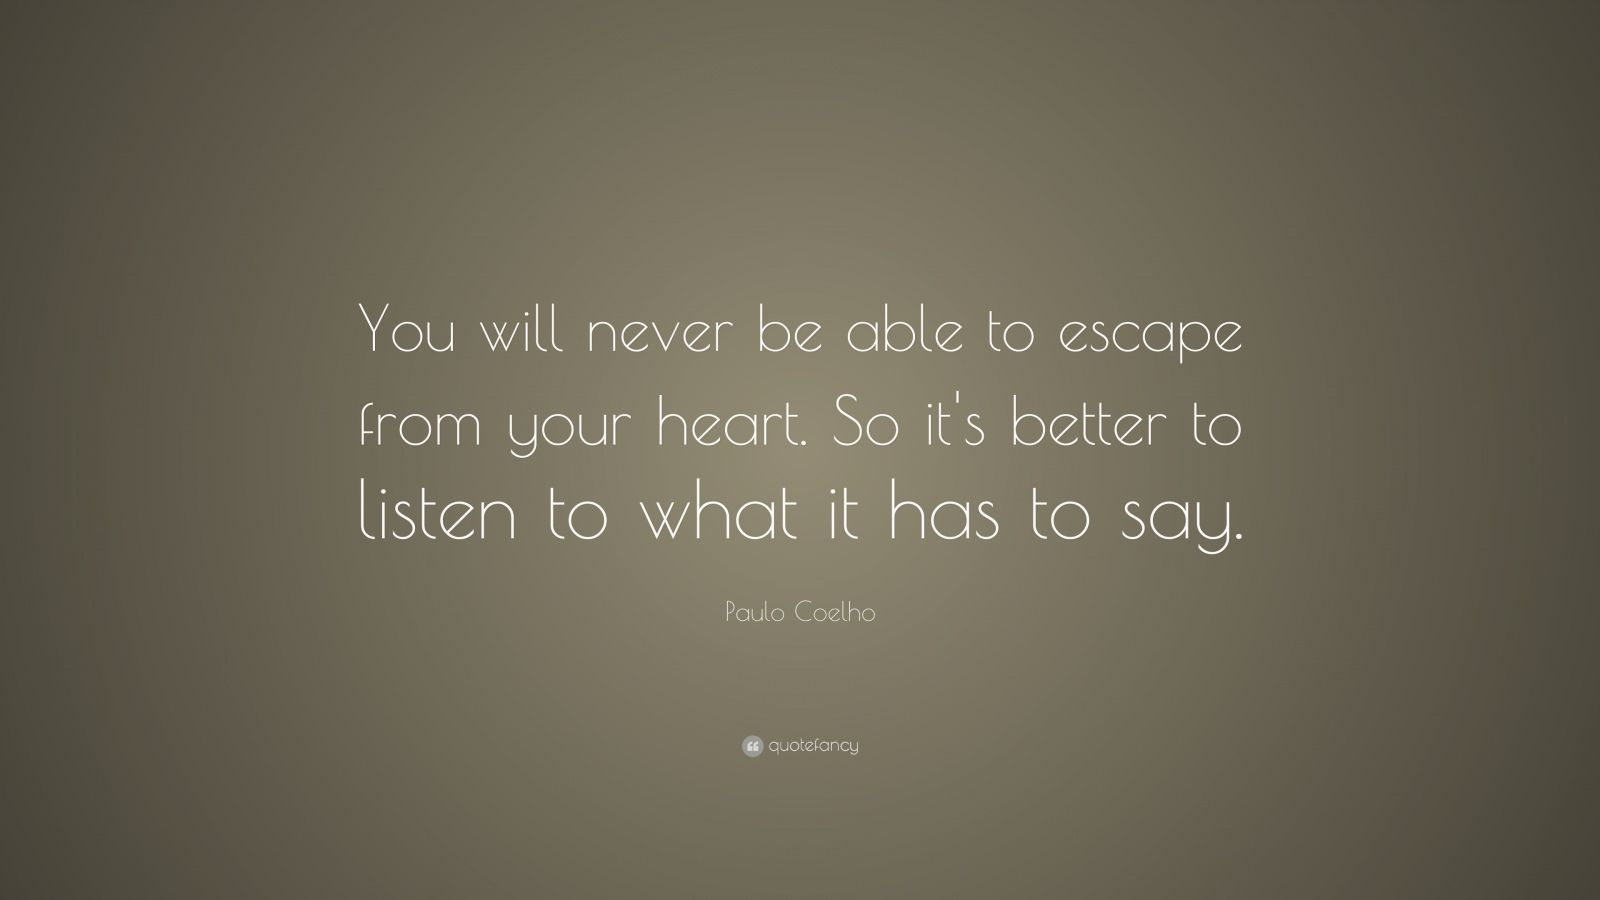 paulo coelho quote you will never be able to escape from